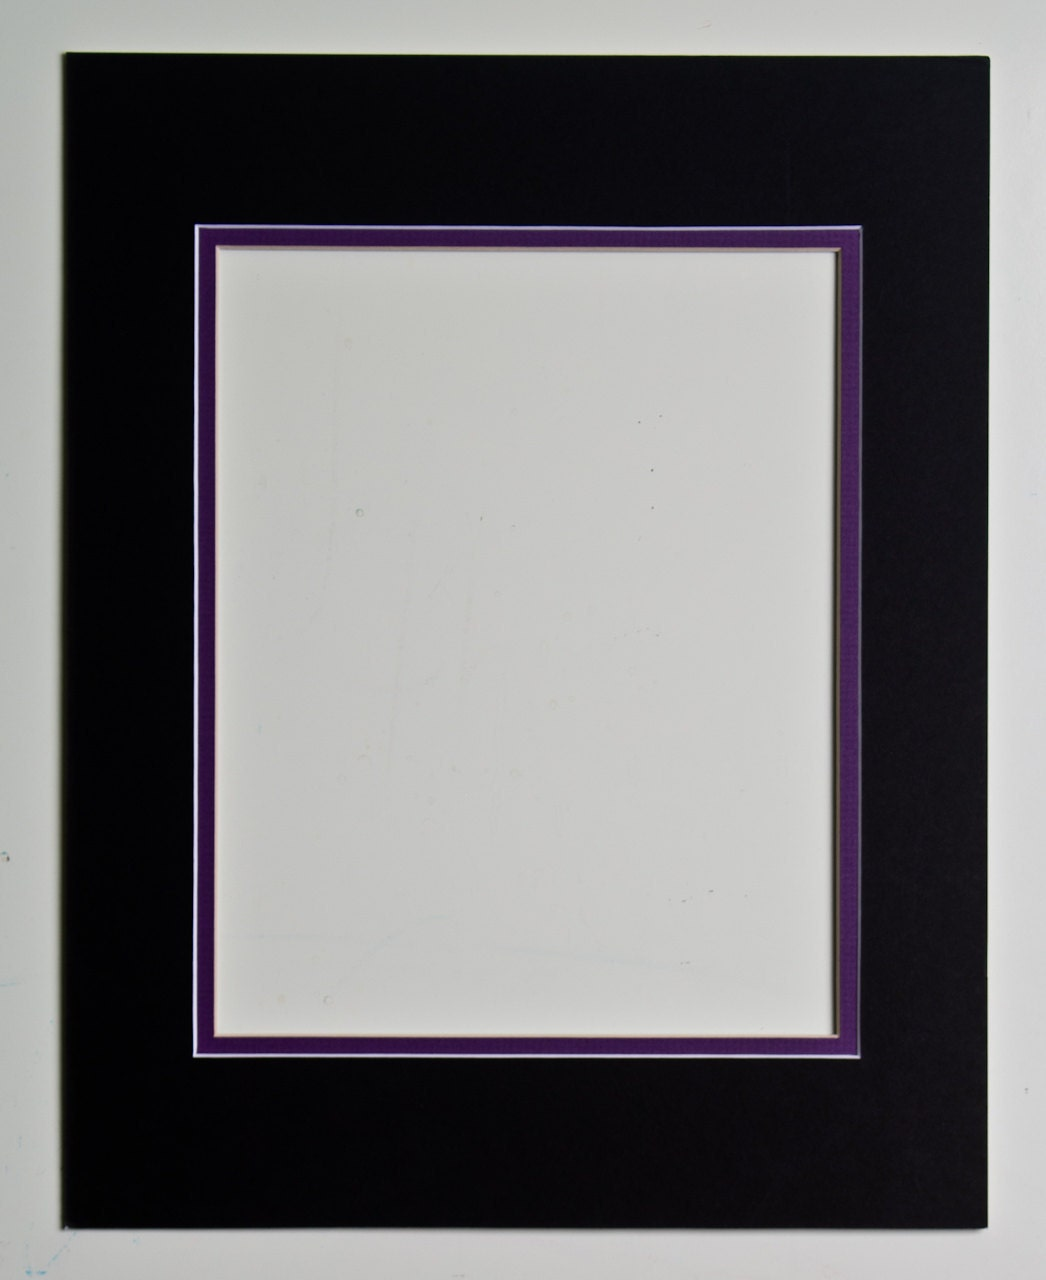 8x10 Double Mat Black And Purple For 11x14 Frame